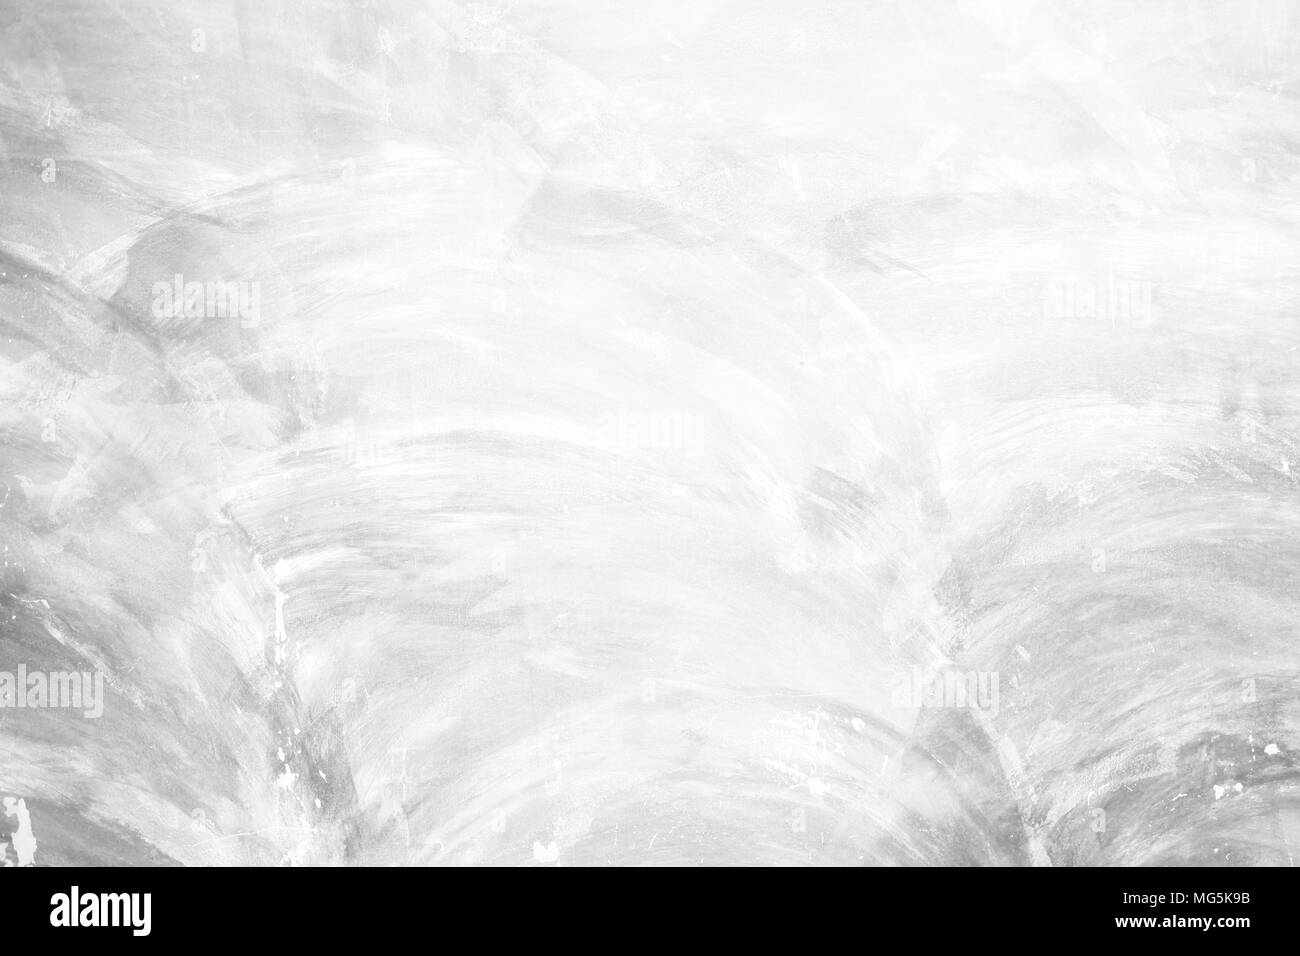 White Grunge Concrete Wall Texture Background. Stock Photo